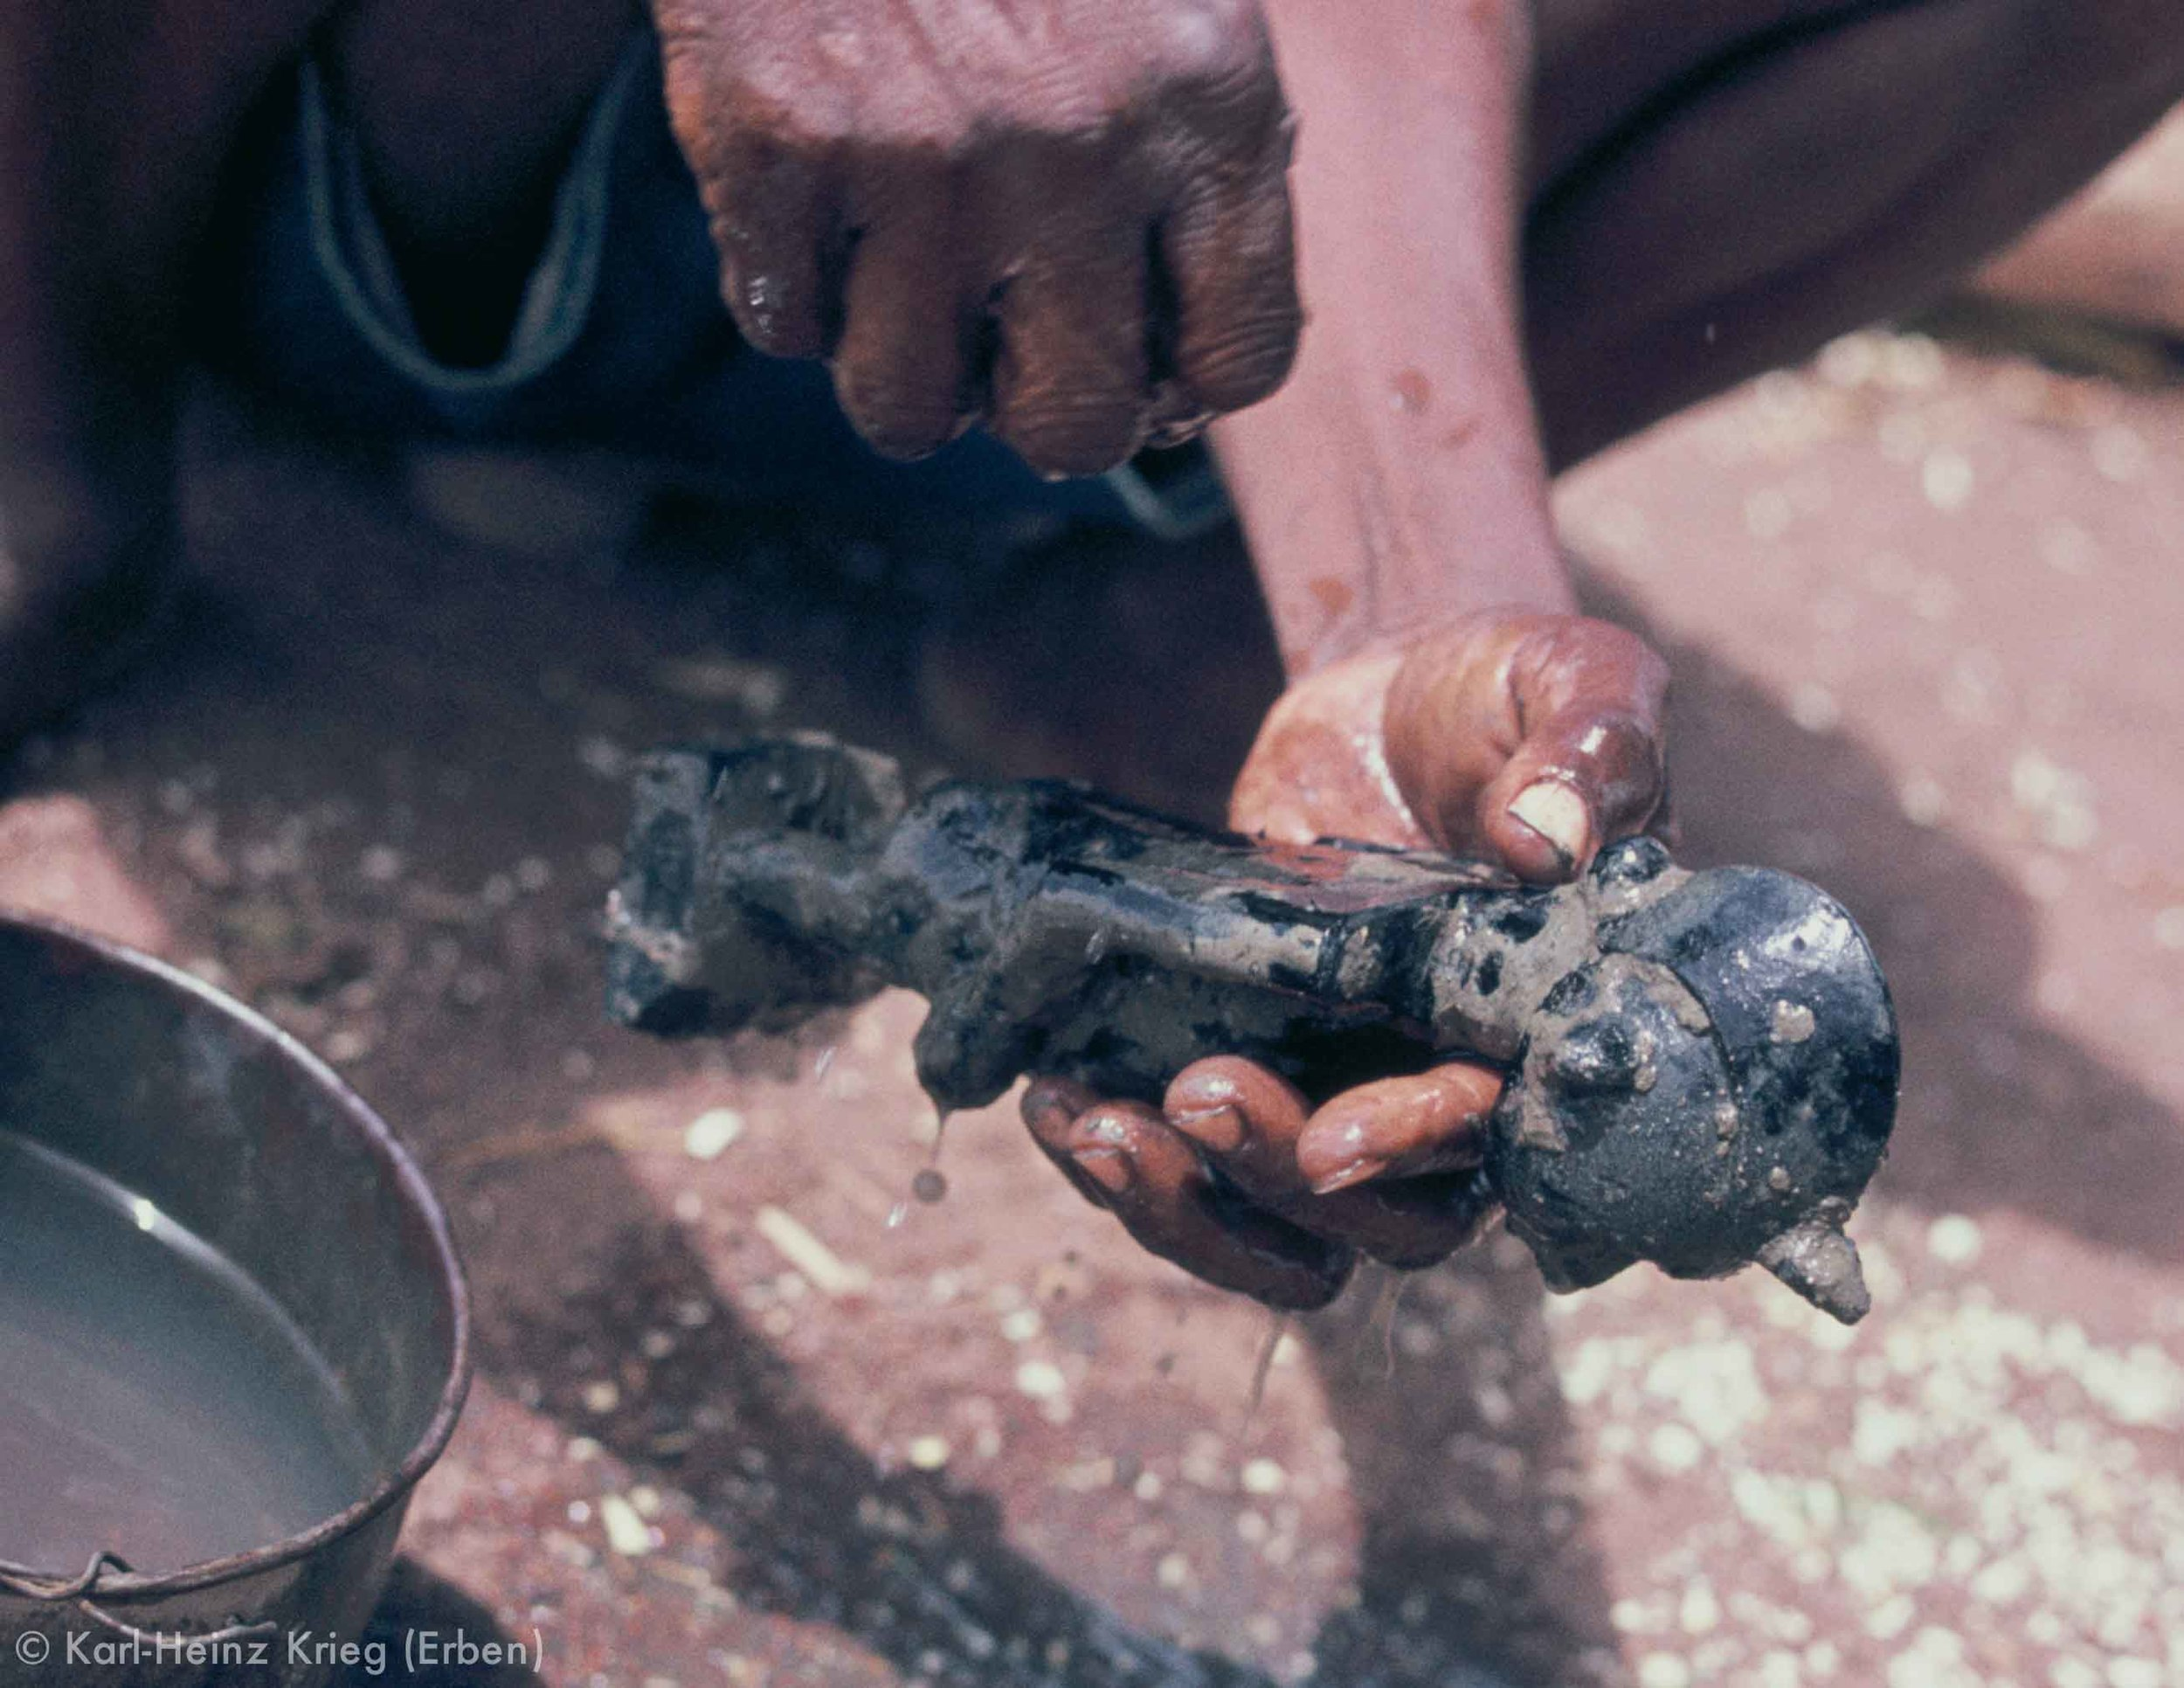 After drying the figure is rinsed with water to remove the mud. Photo: Karl-Heinz Krieg, Sirasso (Region of Boundiali, Côte d'Ivoire), 1978